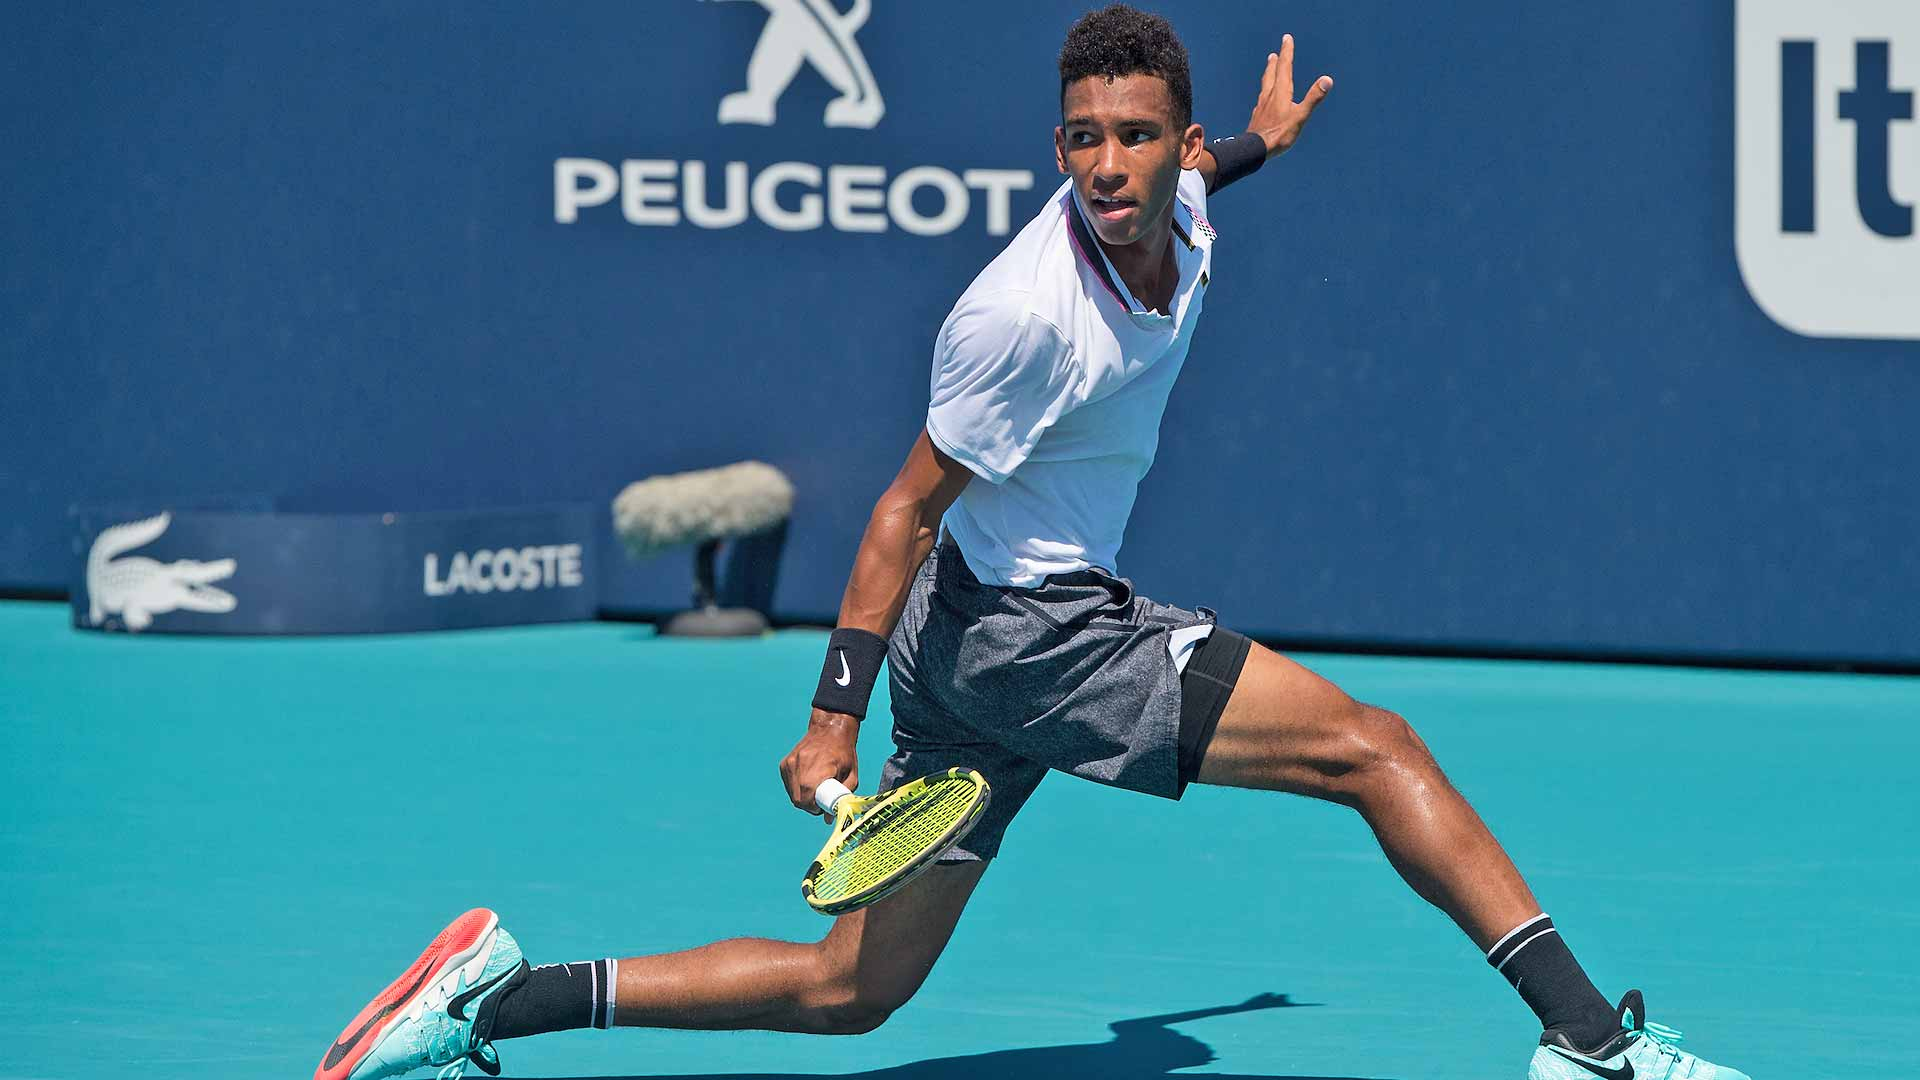 Felix Auger-Aliassime hits a slice against Nikoloz Basilashvili in Miami